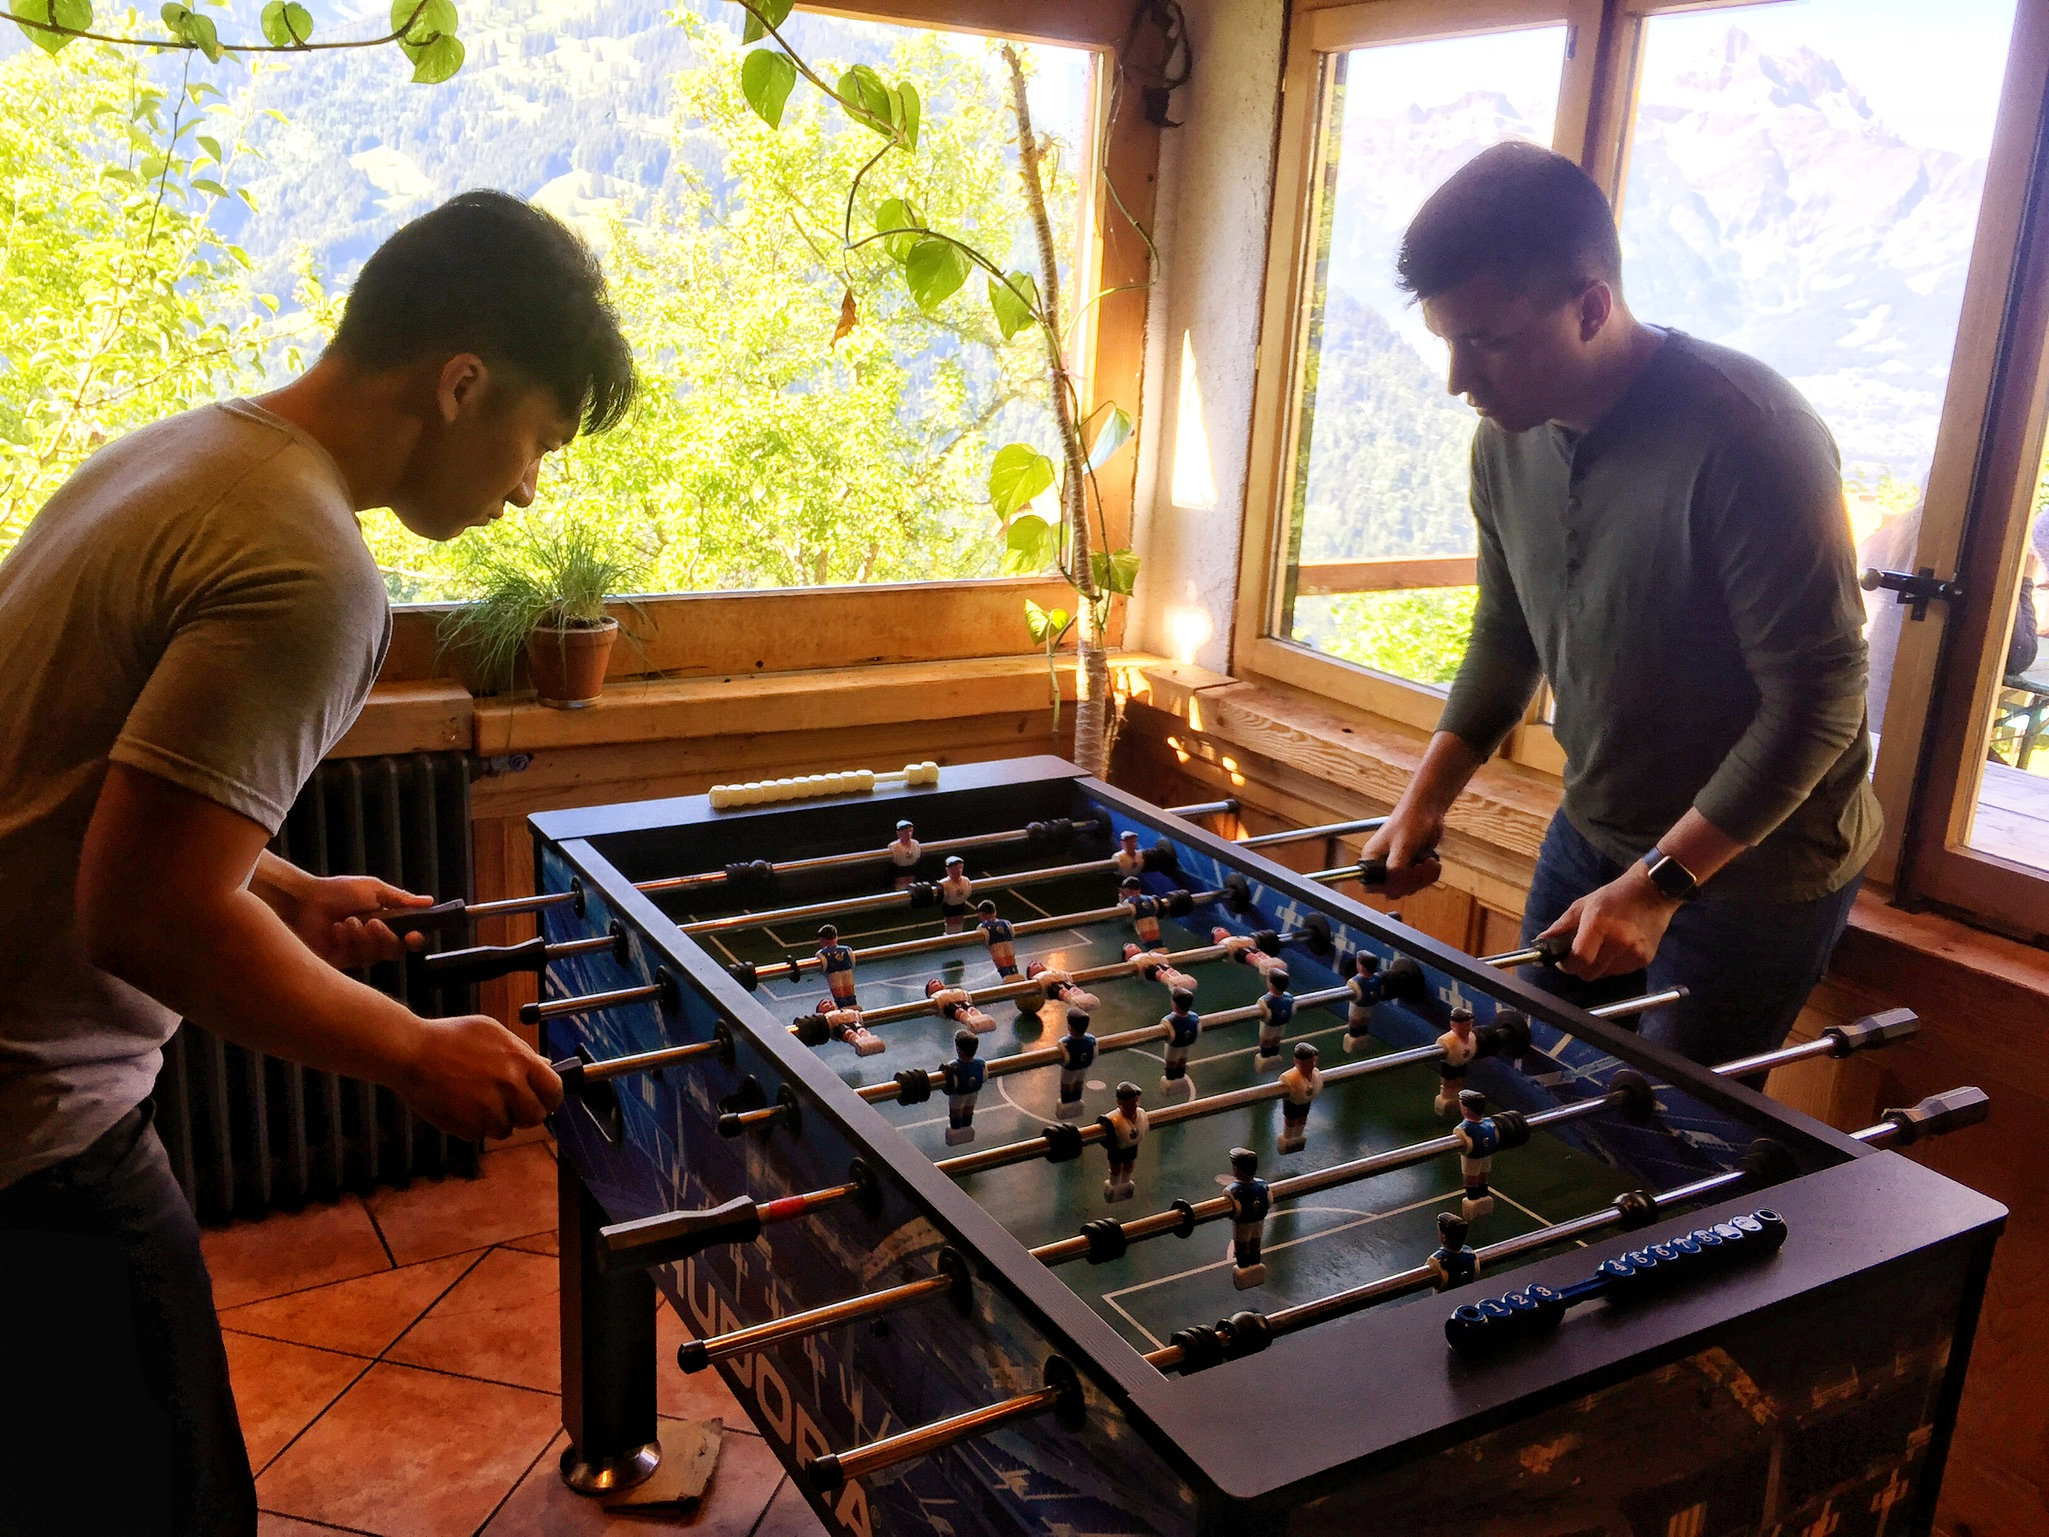 Turns out both of these guys' degrees are in foosball, not music.